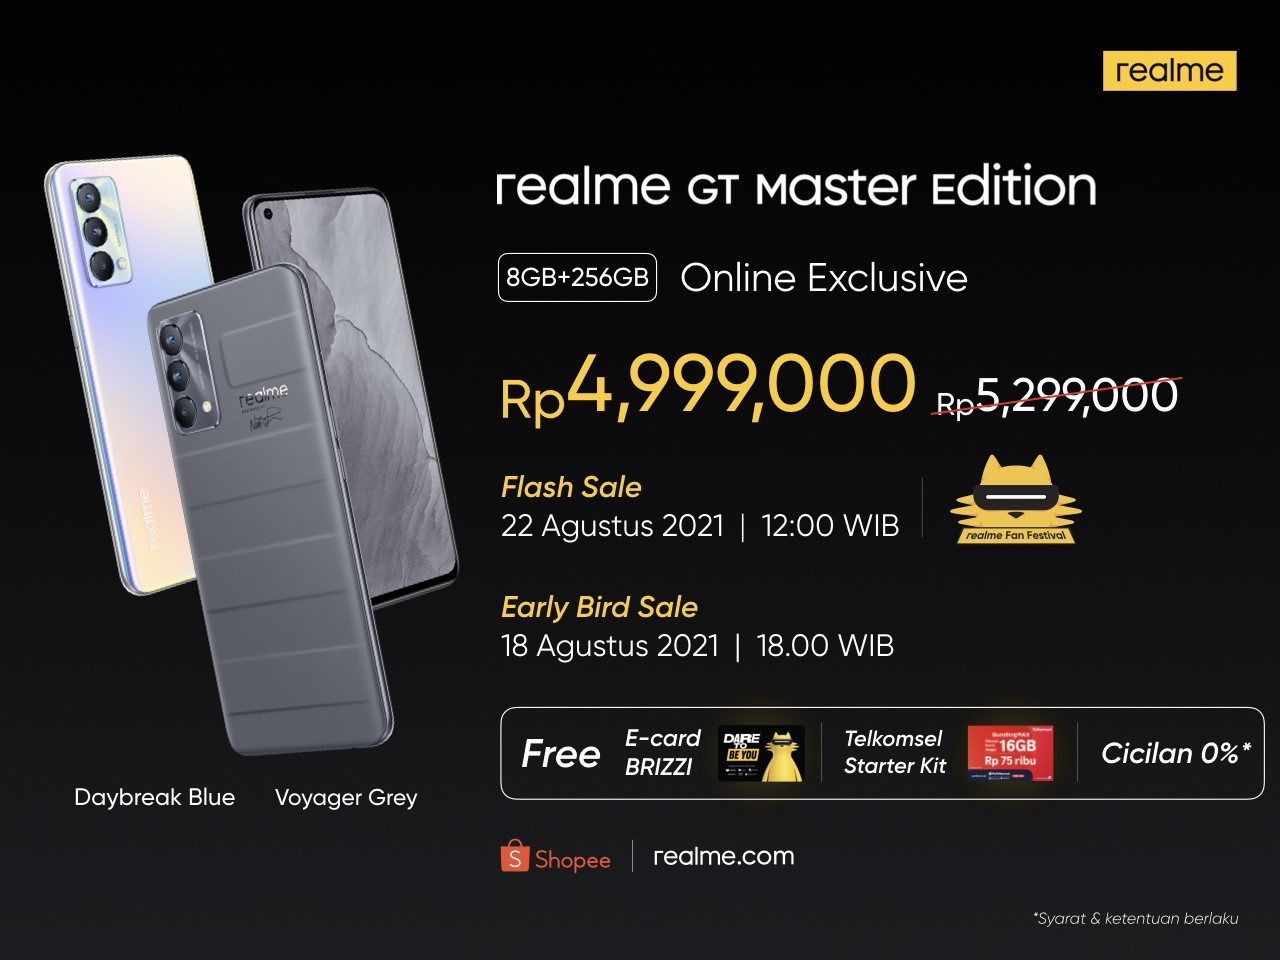 realme GT Master Edition - Daybreak Blue Lifestyle Angle